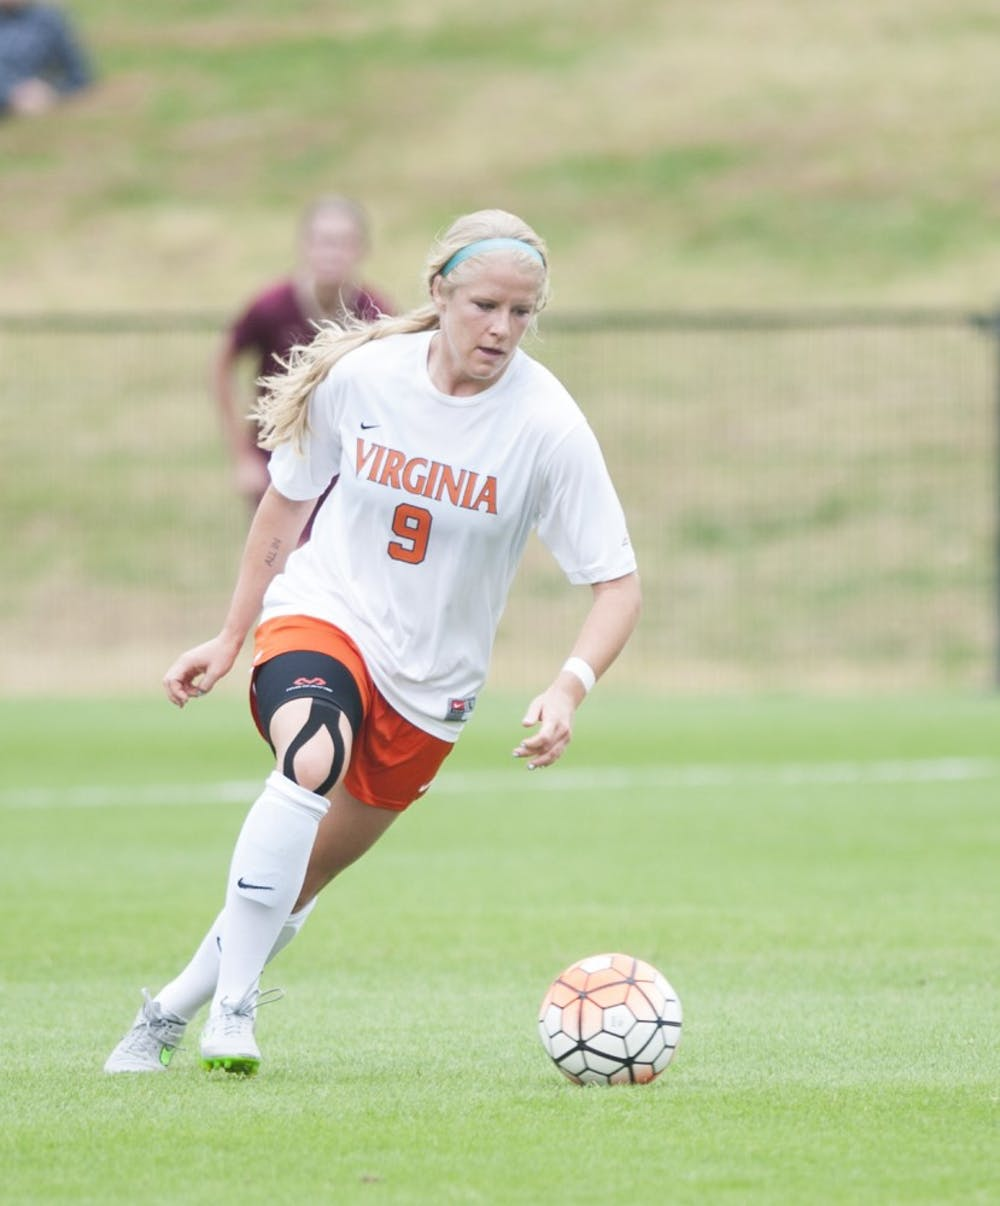 <p>Senior forward Makenzy Doniak has been dogged by injury this season, but she is healthy now. Virginia's most dangerous offensive threat scored two goals against Florida State in the ACC title game.&nbsp;</p>